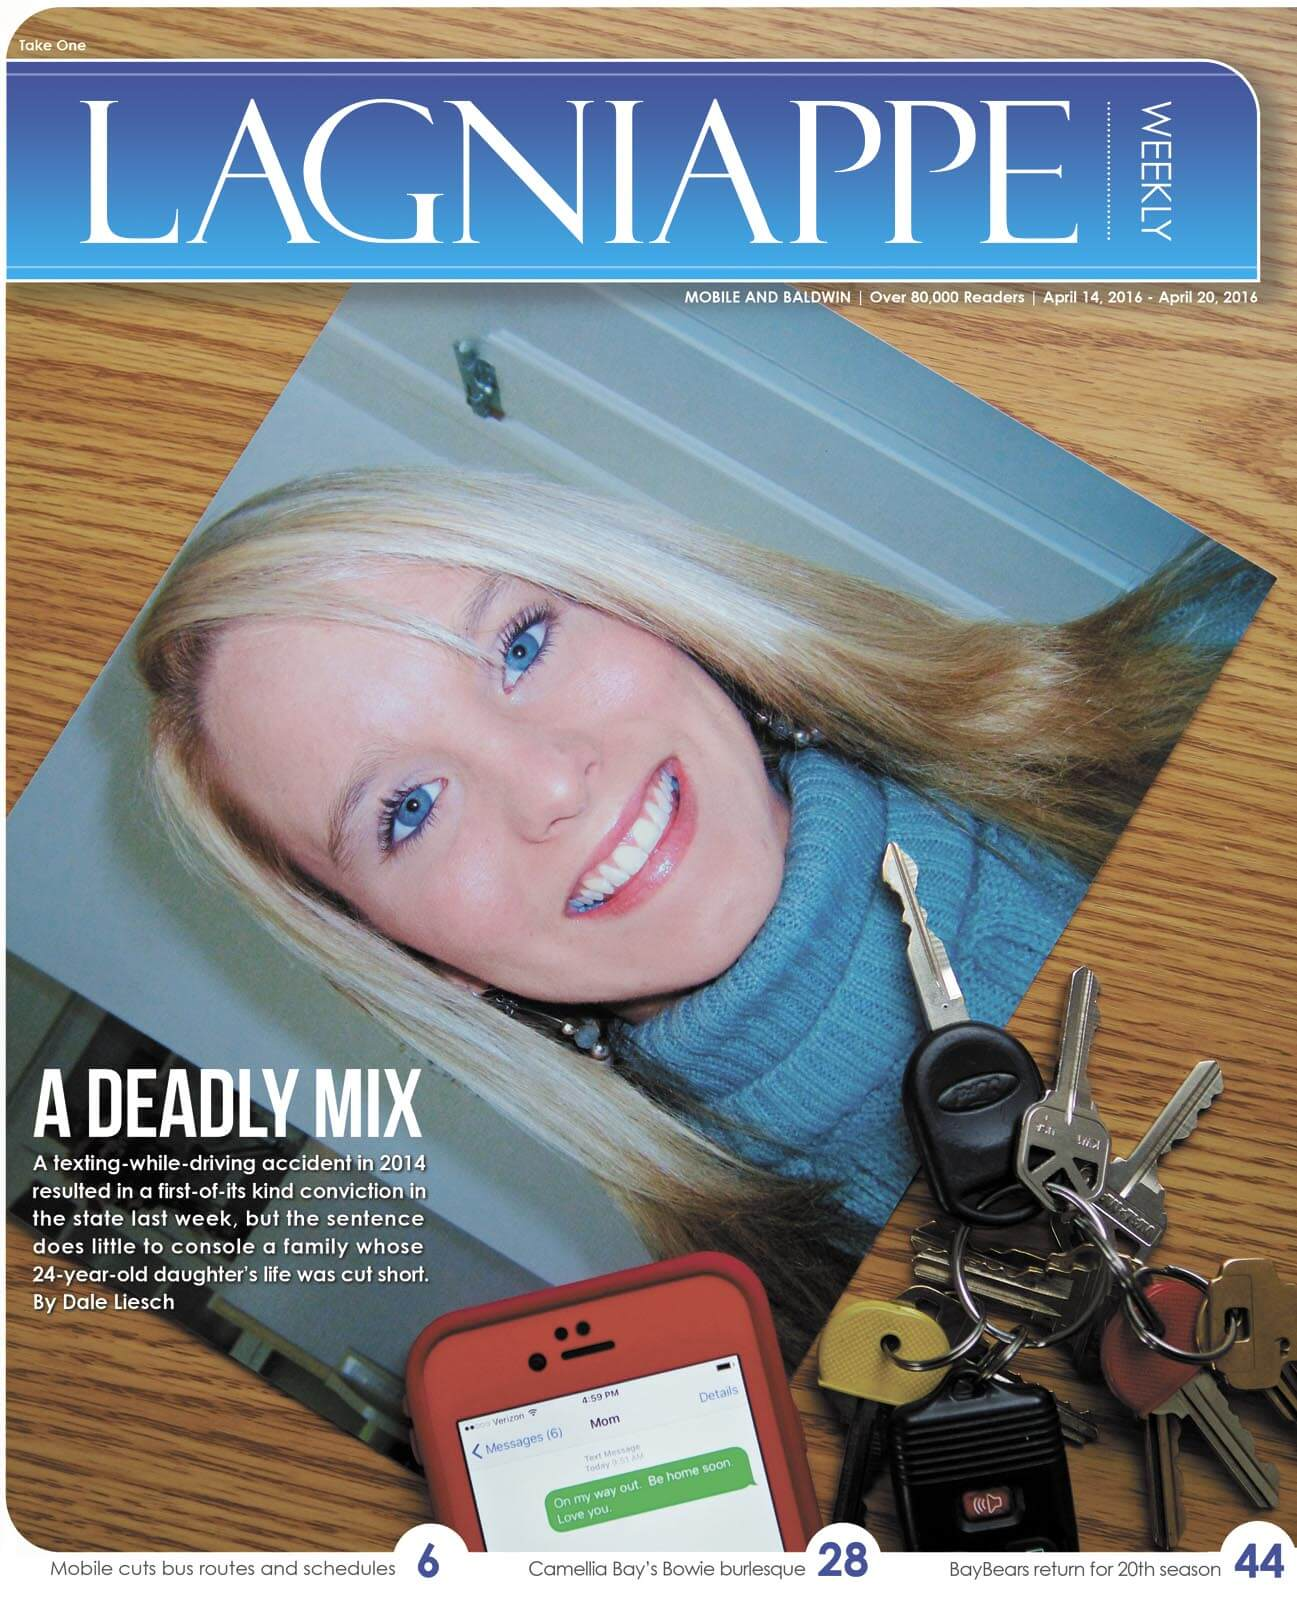 Rare conviction does little to console family of texting-while-driving victim